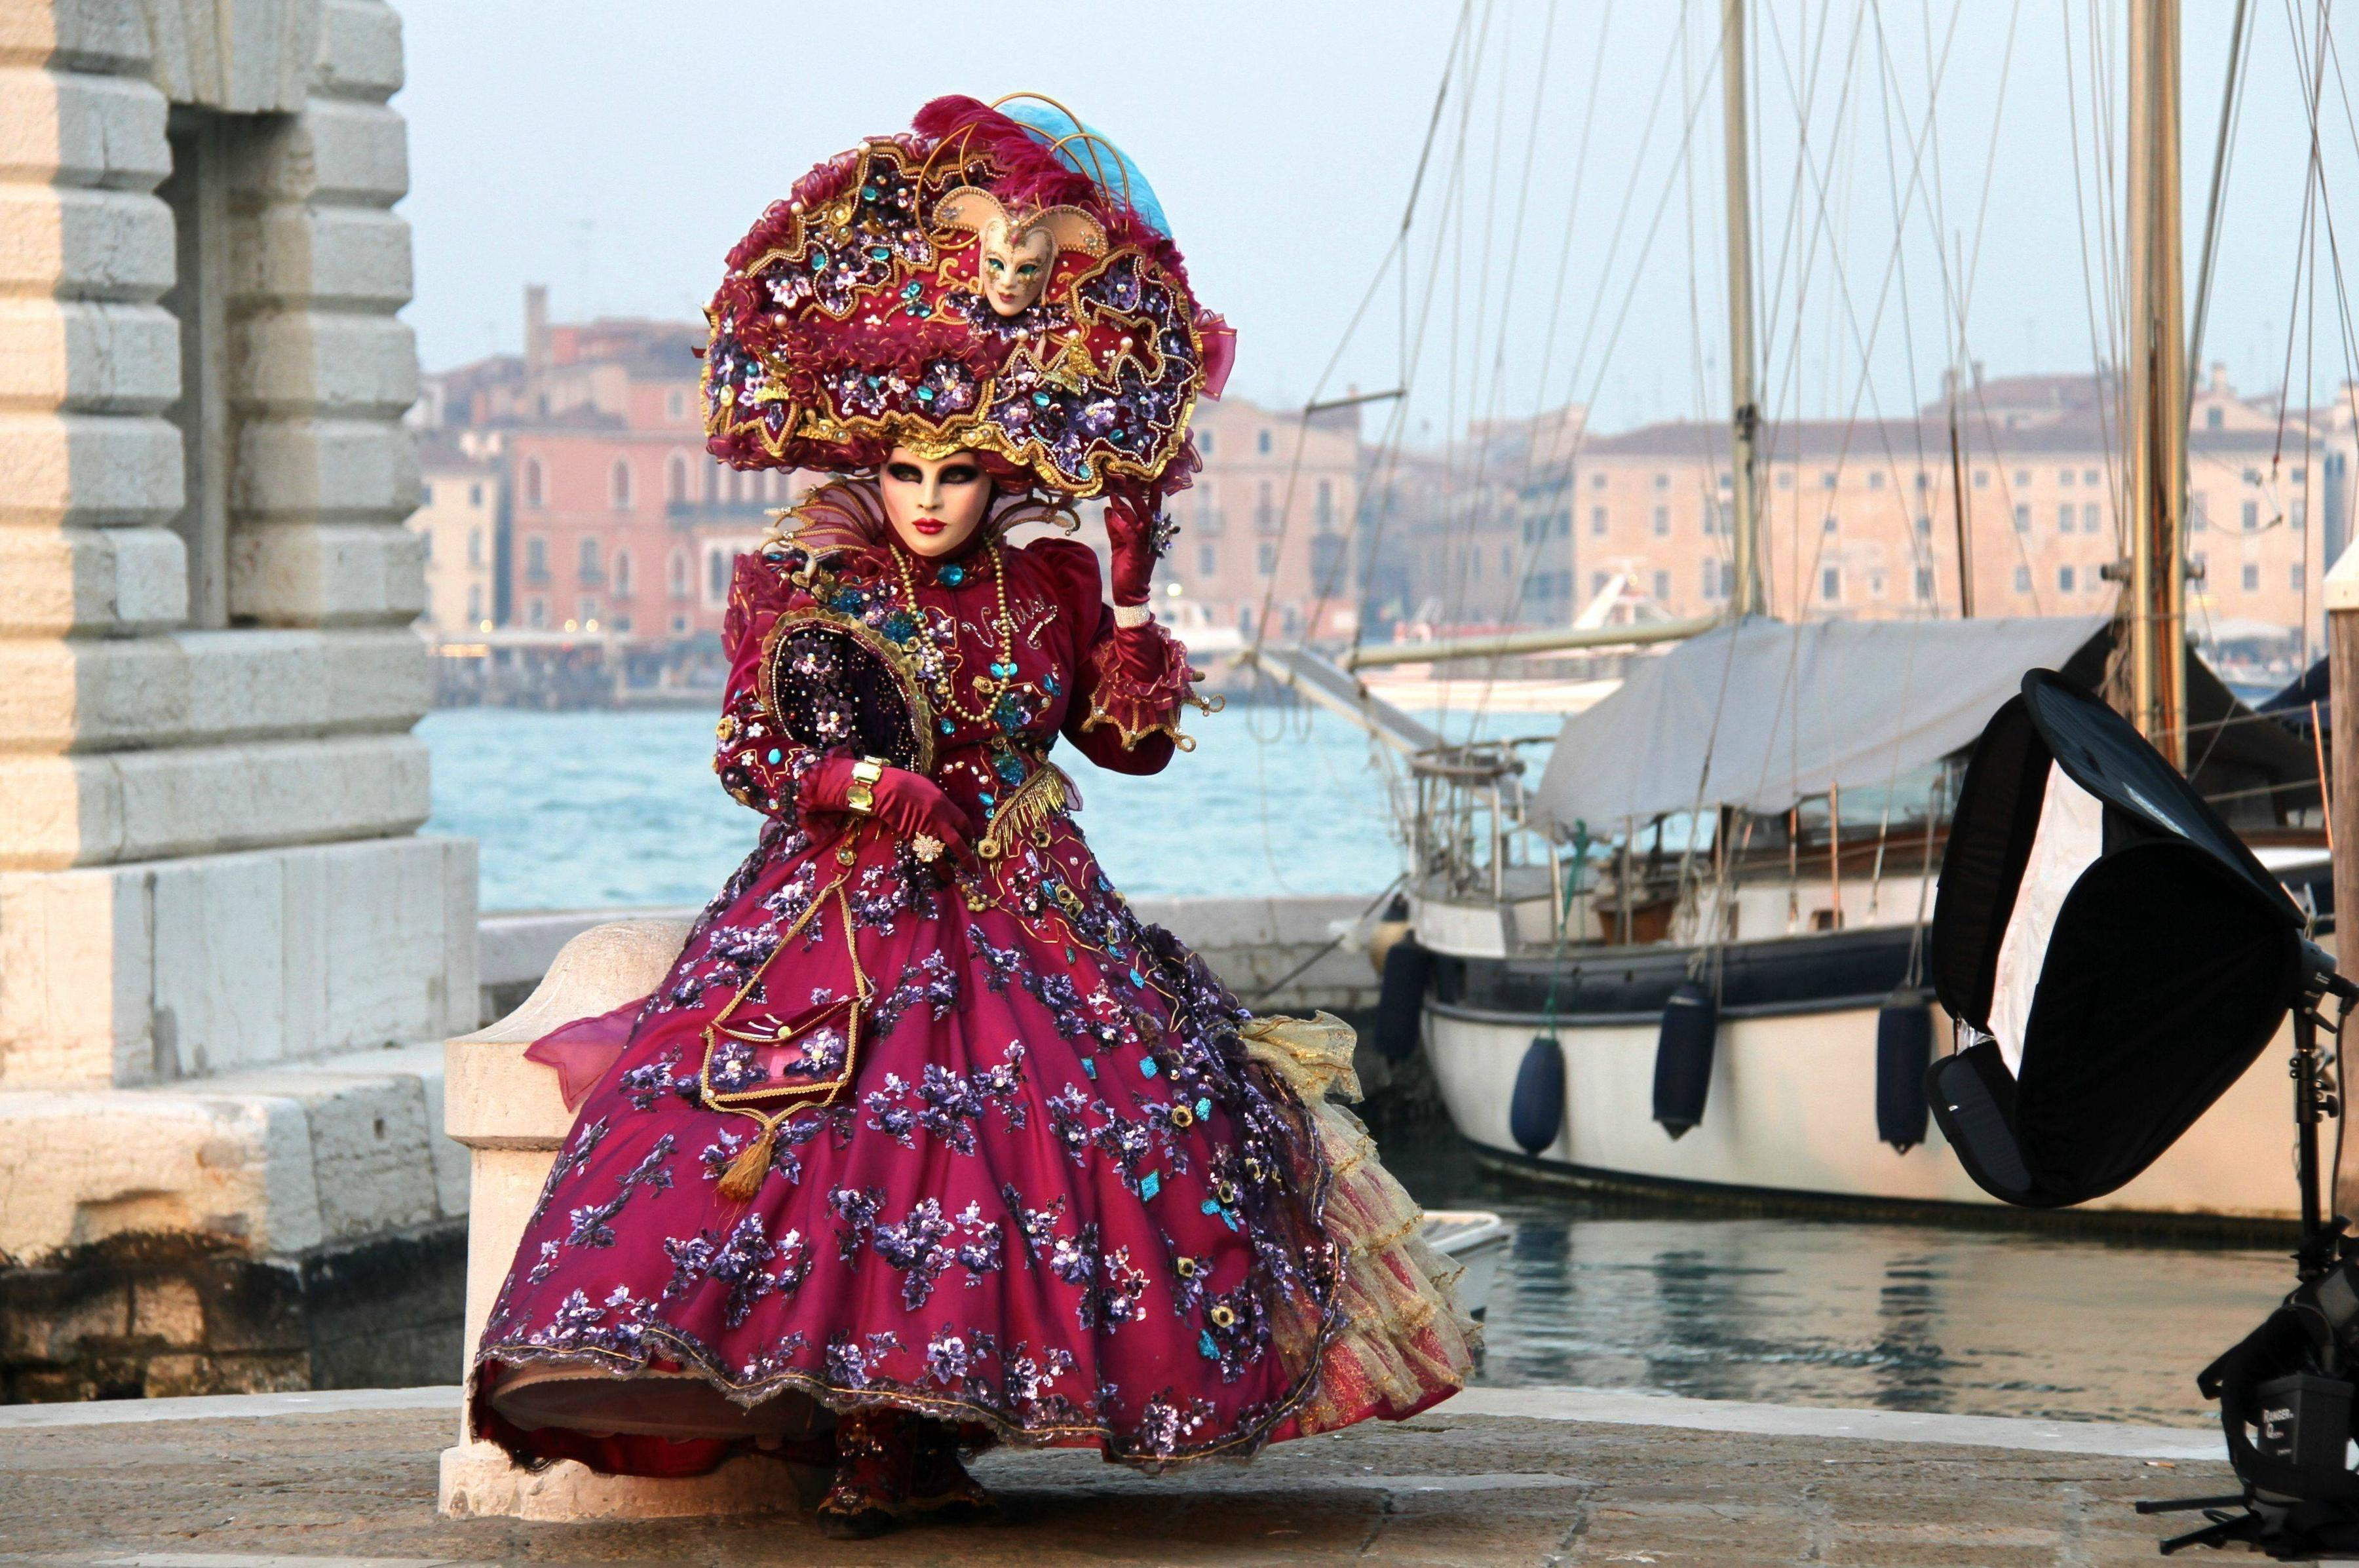 6 Reasons Why Venice Carnival is The Most Unique Festival in the